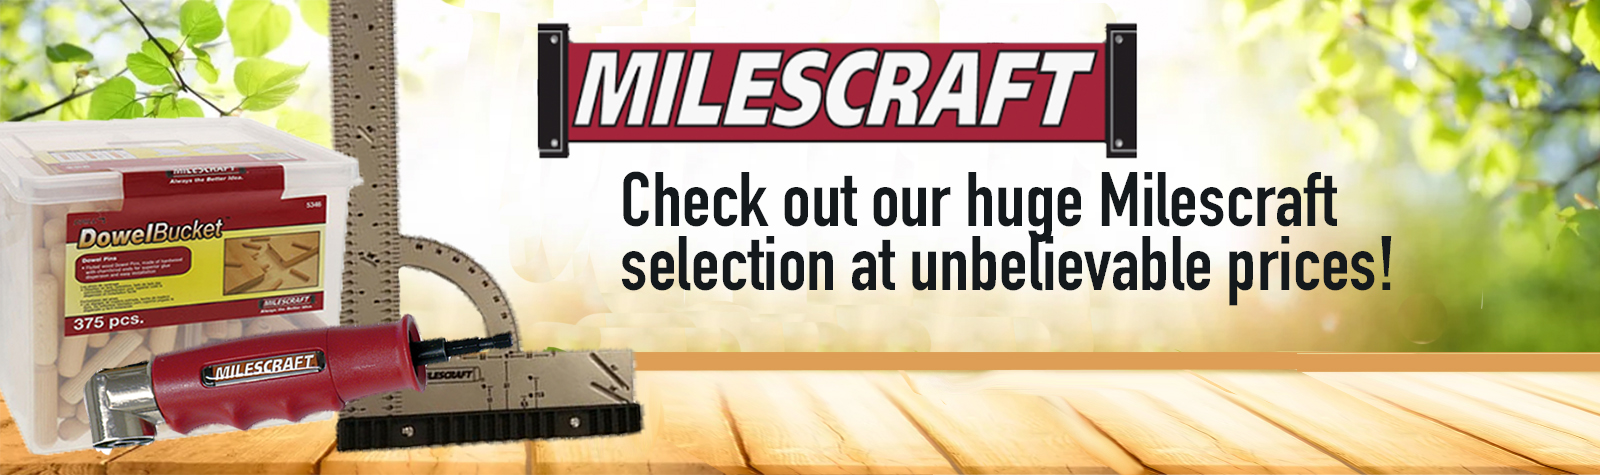 Check out our huge Milescraft selection at unbelievable prices!